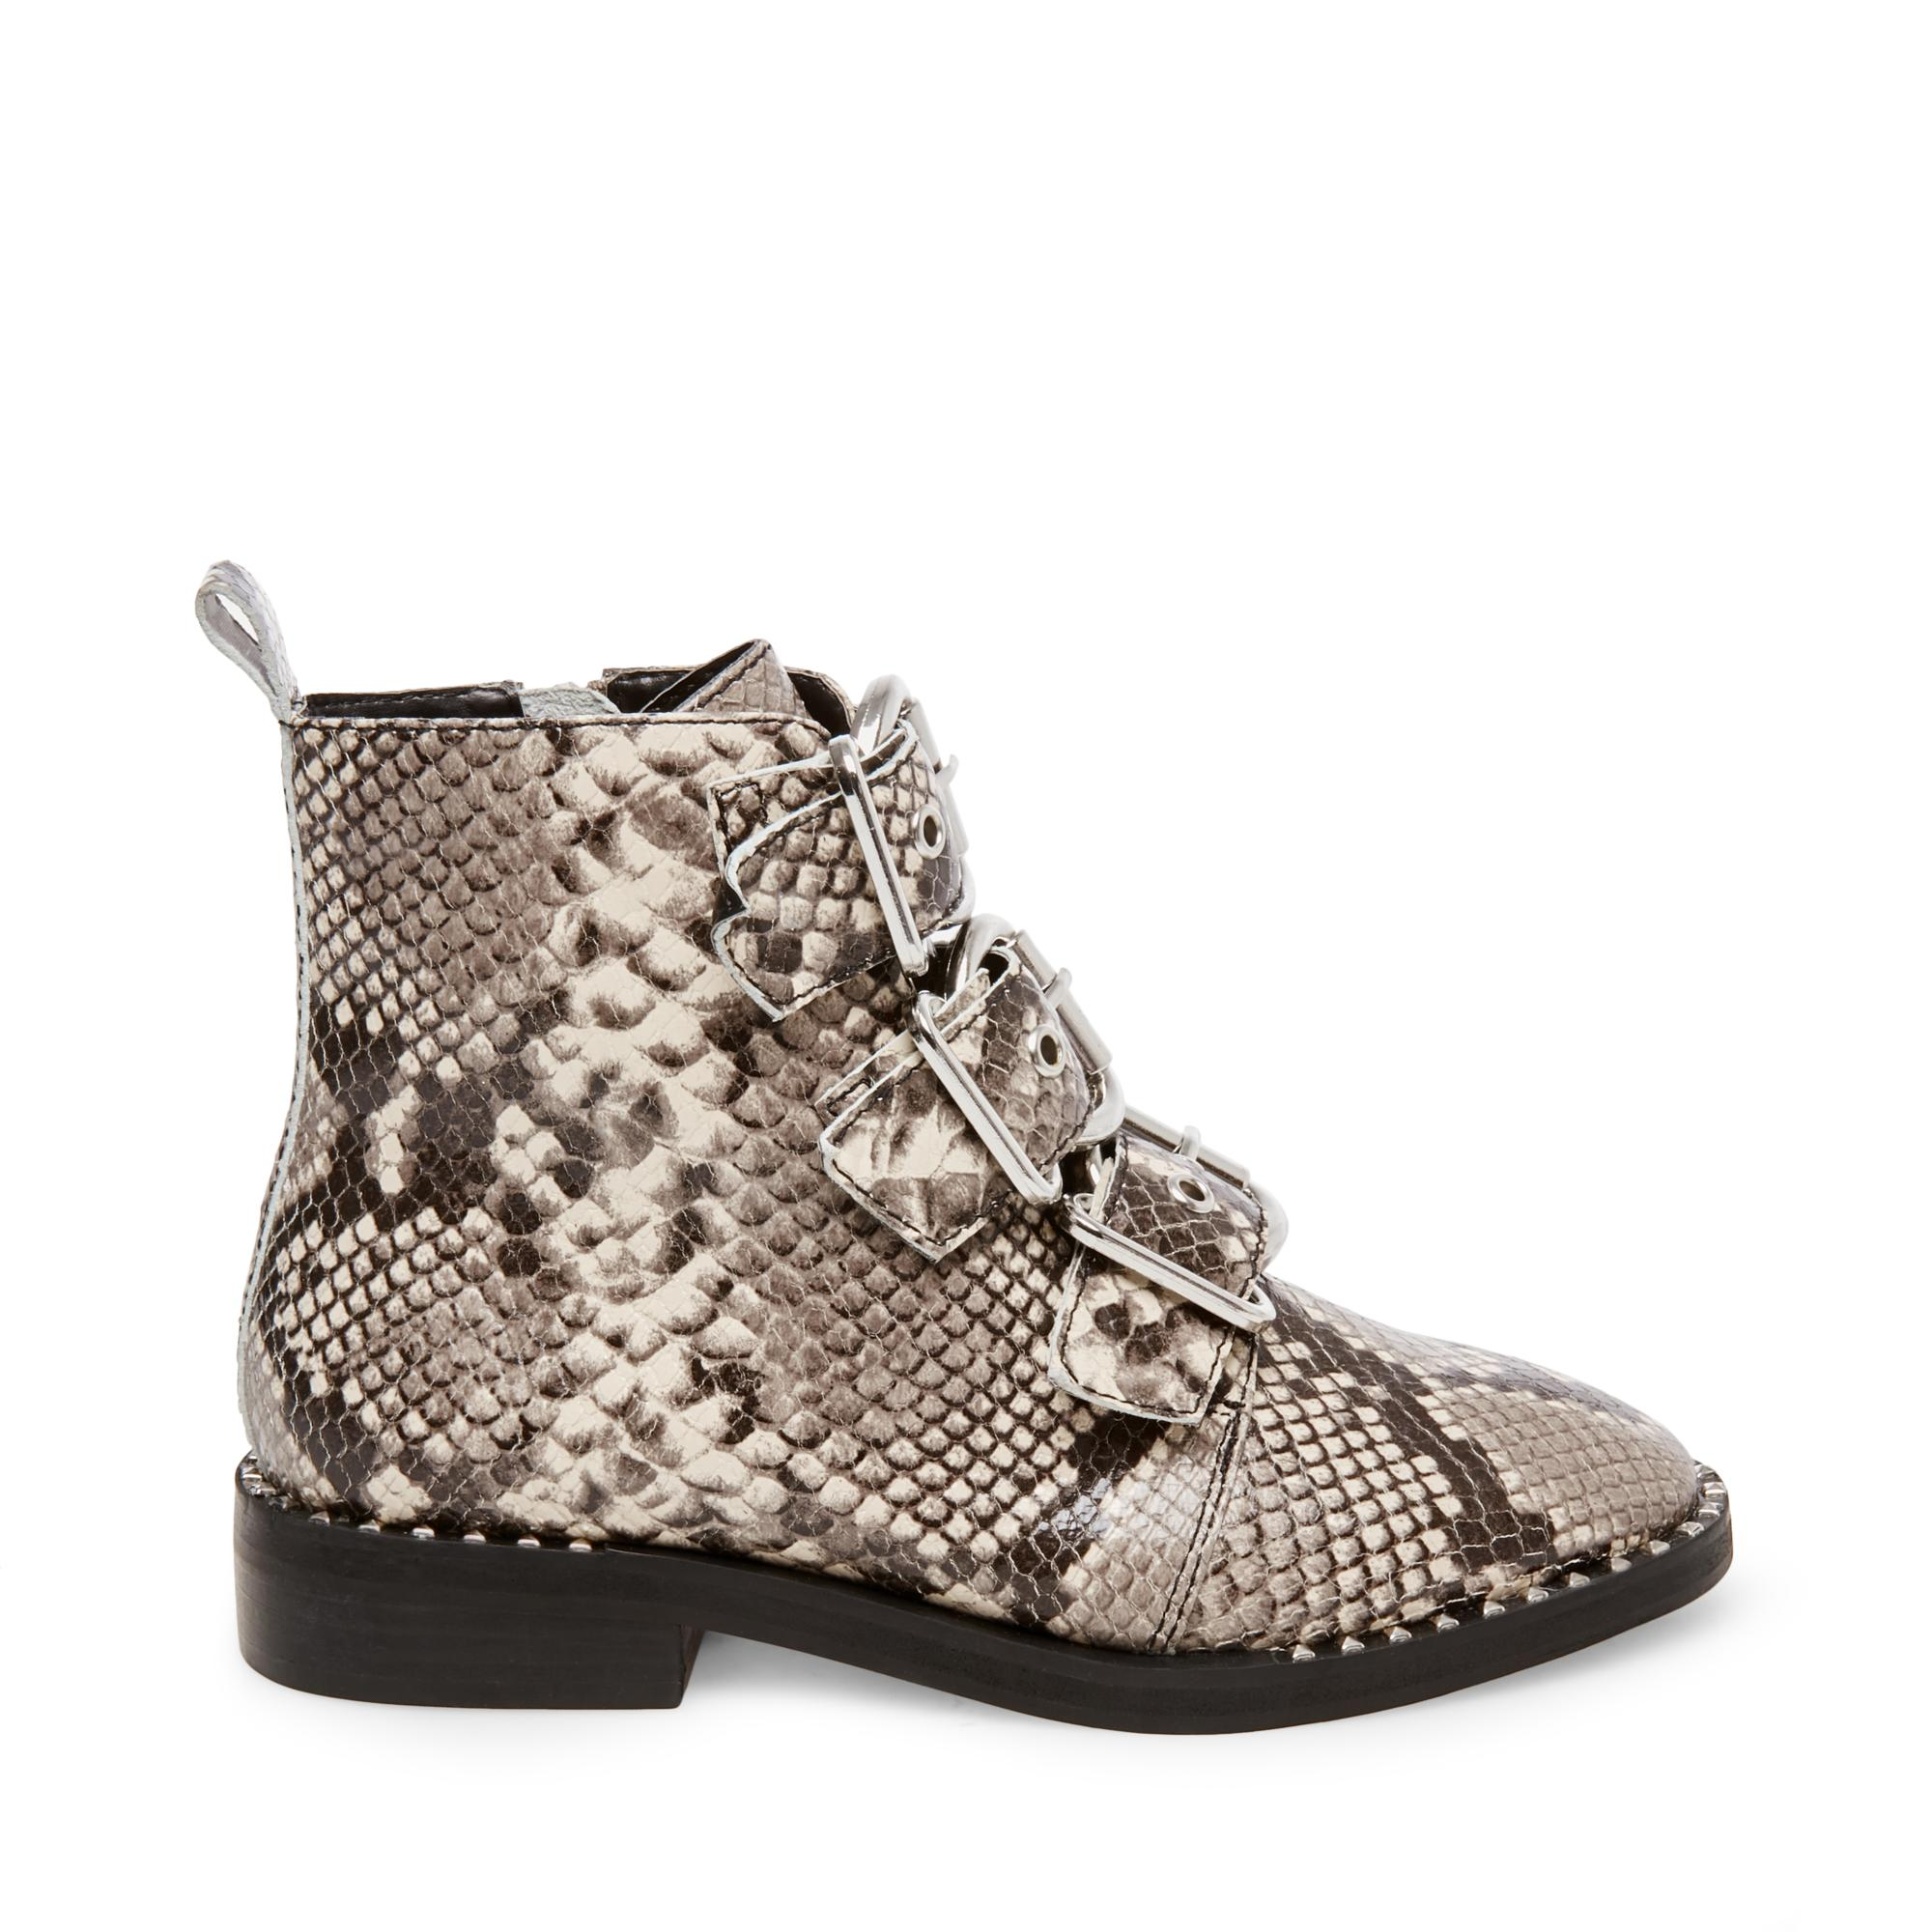 STEVEMADDEN-BOOTIES_RECHARGE_NATURAL-SNAKE_SIDE_preview